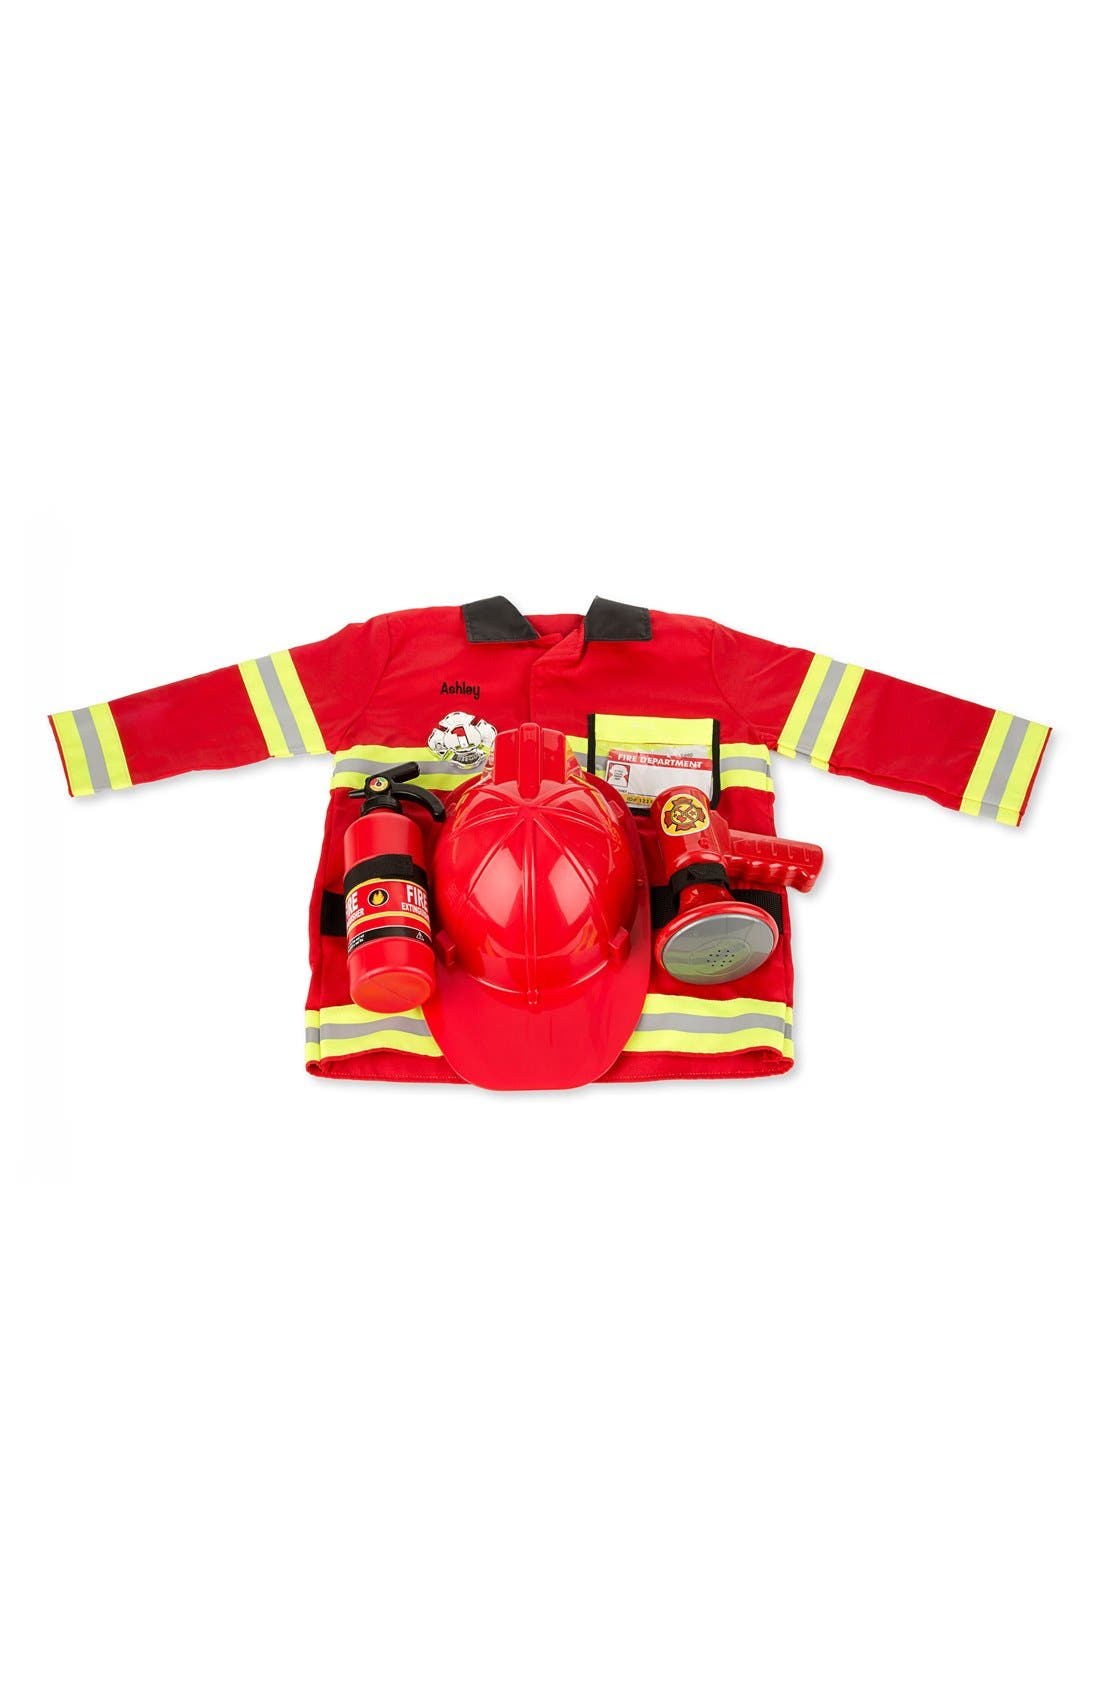 Alternate Image 1 Selected - Melissa & Doug Personalized Fire Chief Costume Set (Little Kid)